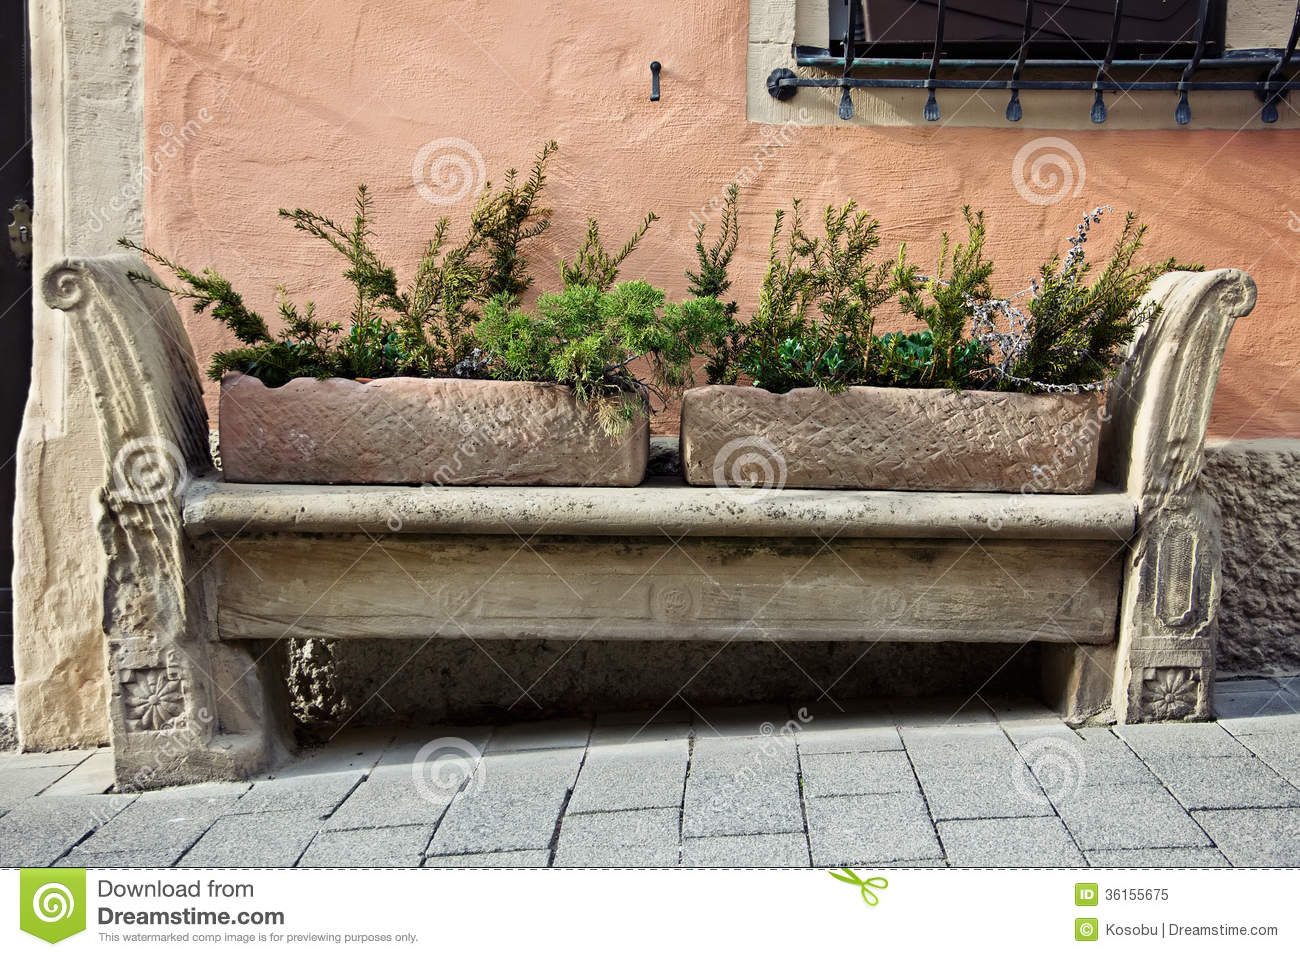 Stone Carving Bench In Old Town Royalty Free Stock Photo